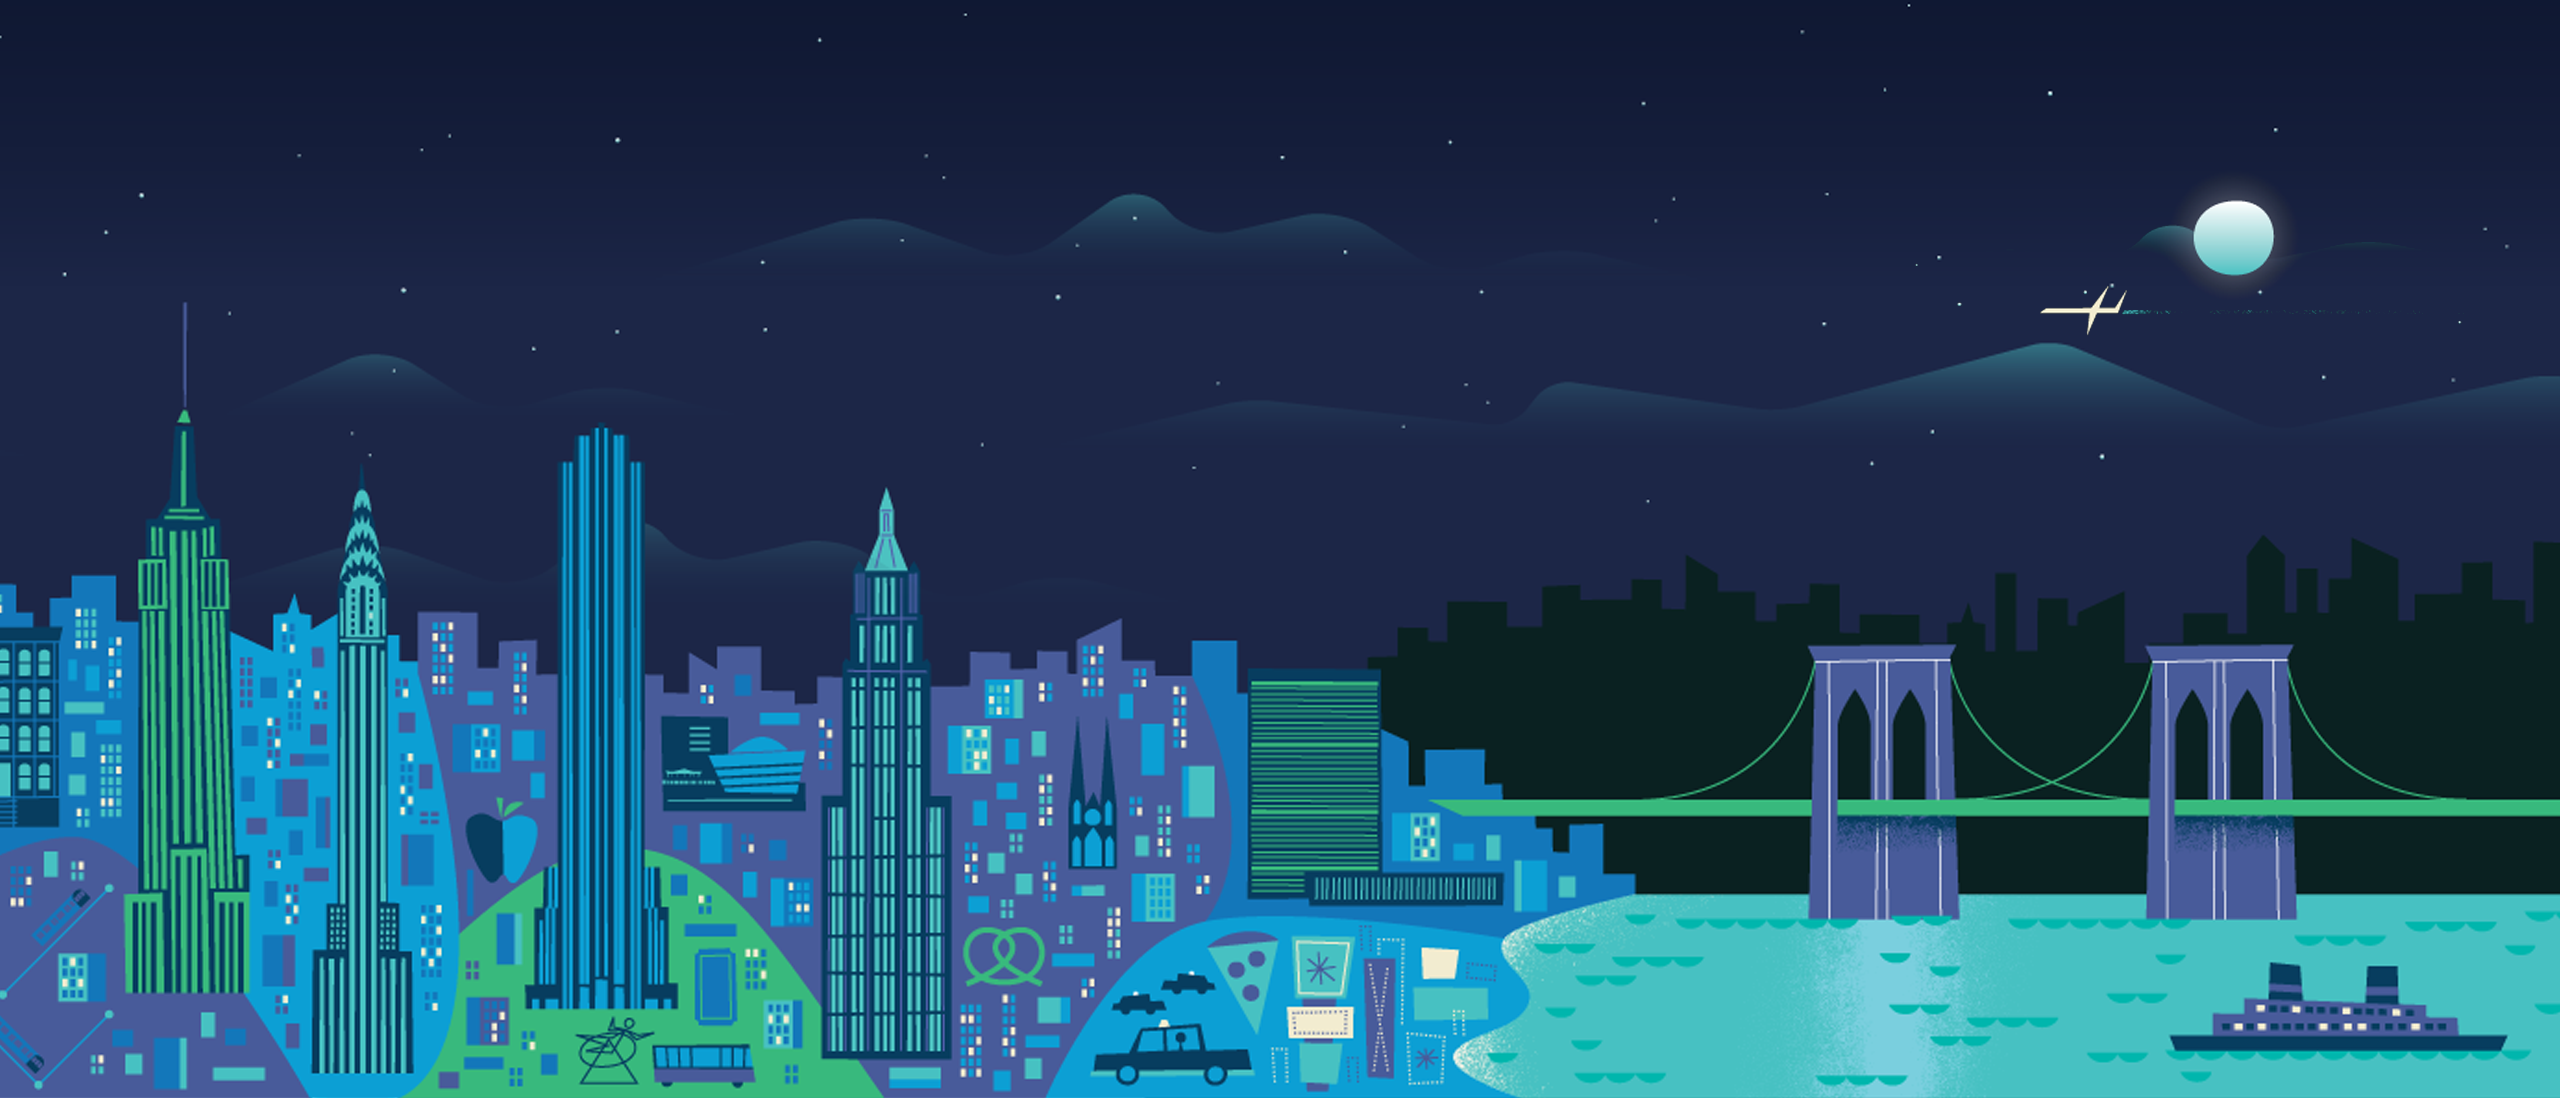 Download Those Awesome Google Now City Headers in High ...